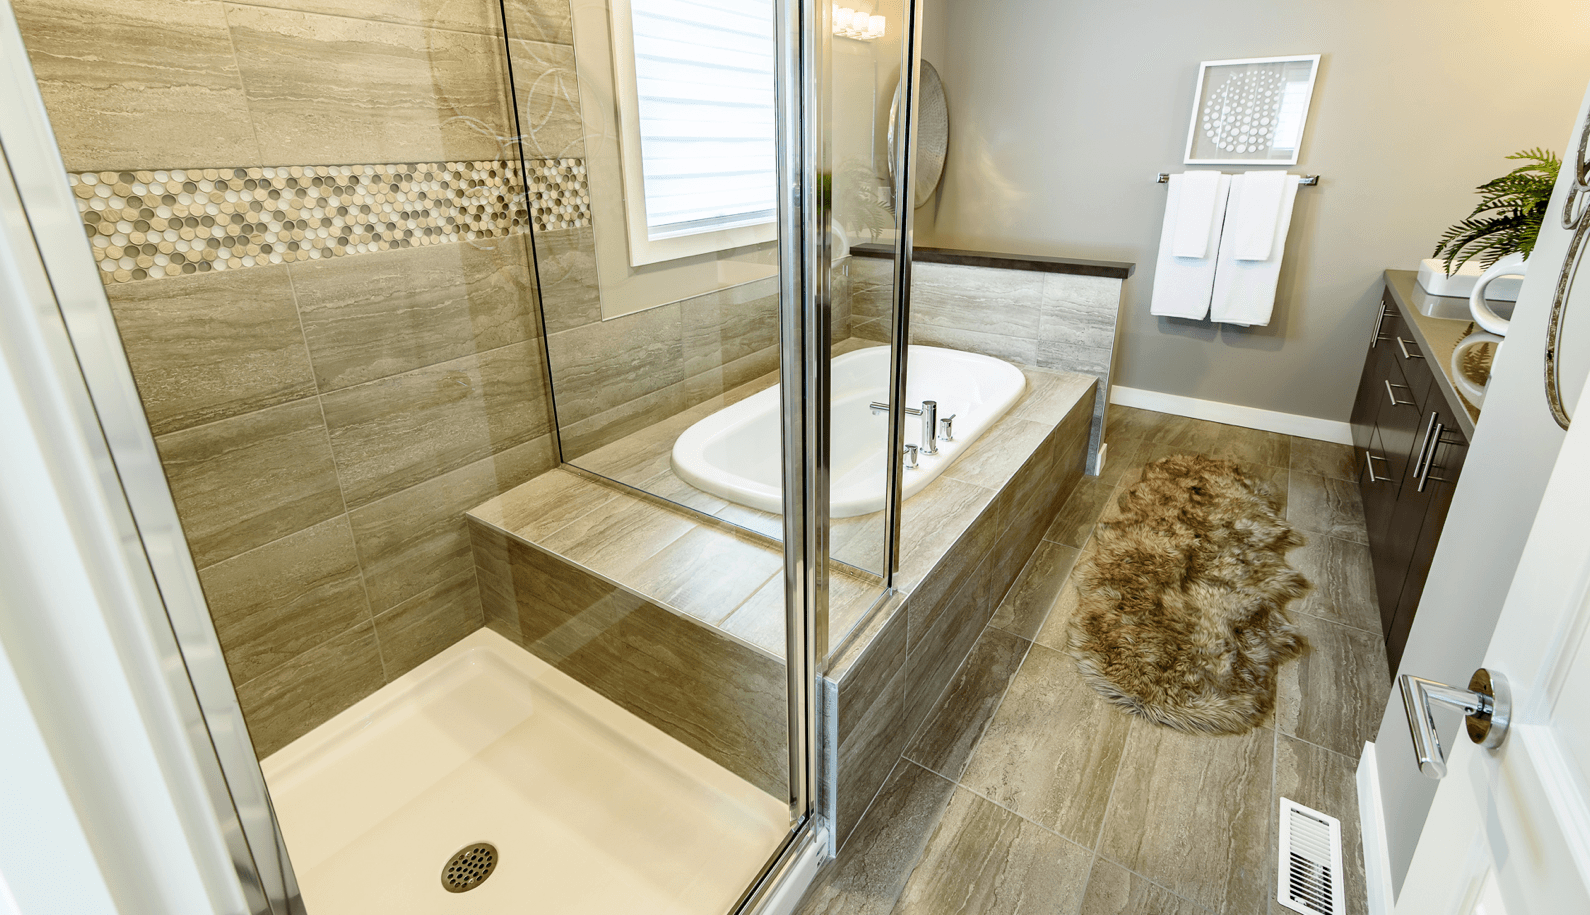 Your Flooring Choices in a New Home Build Tile Image